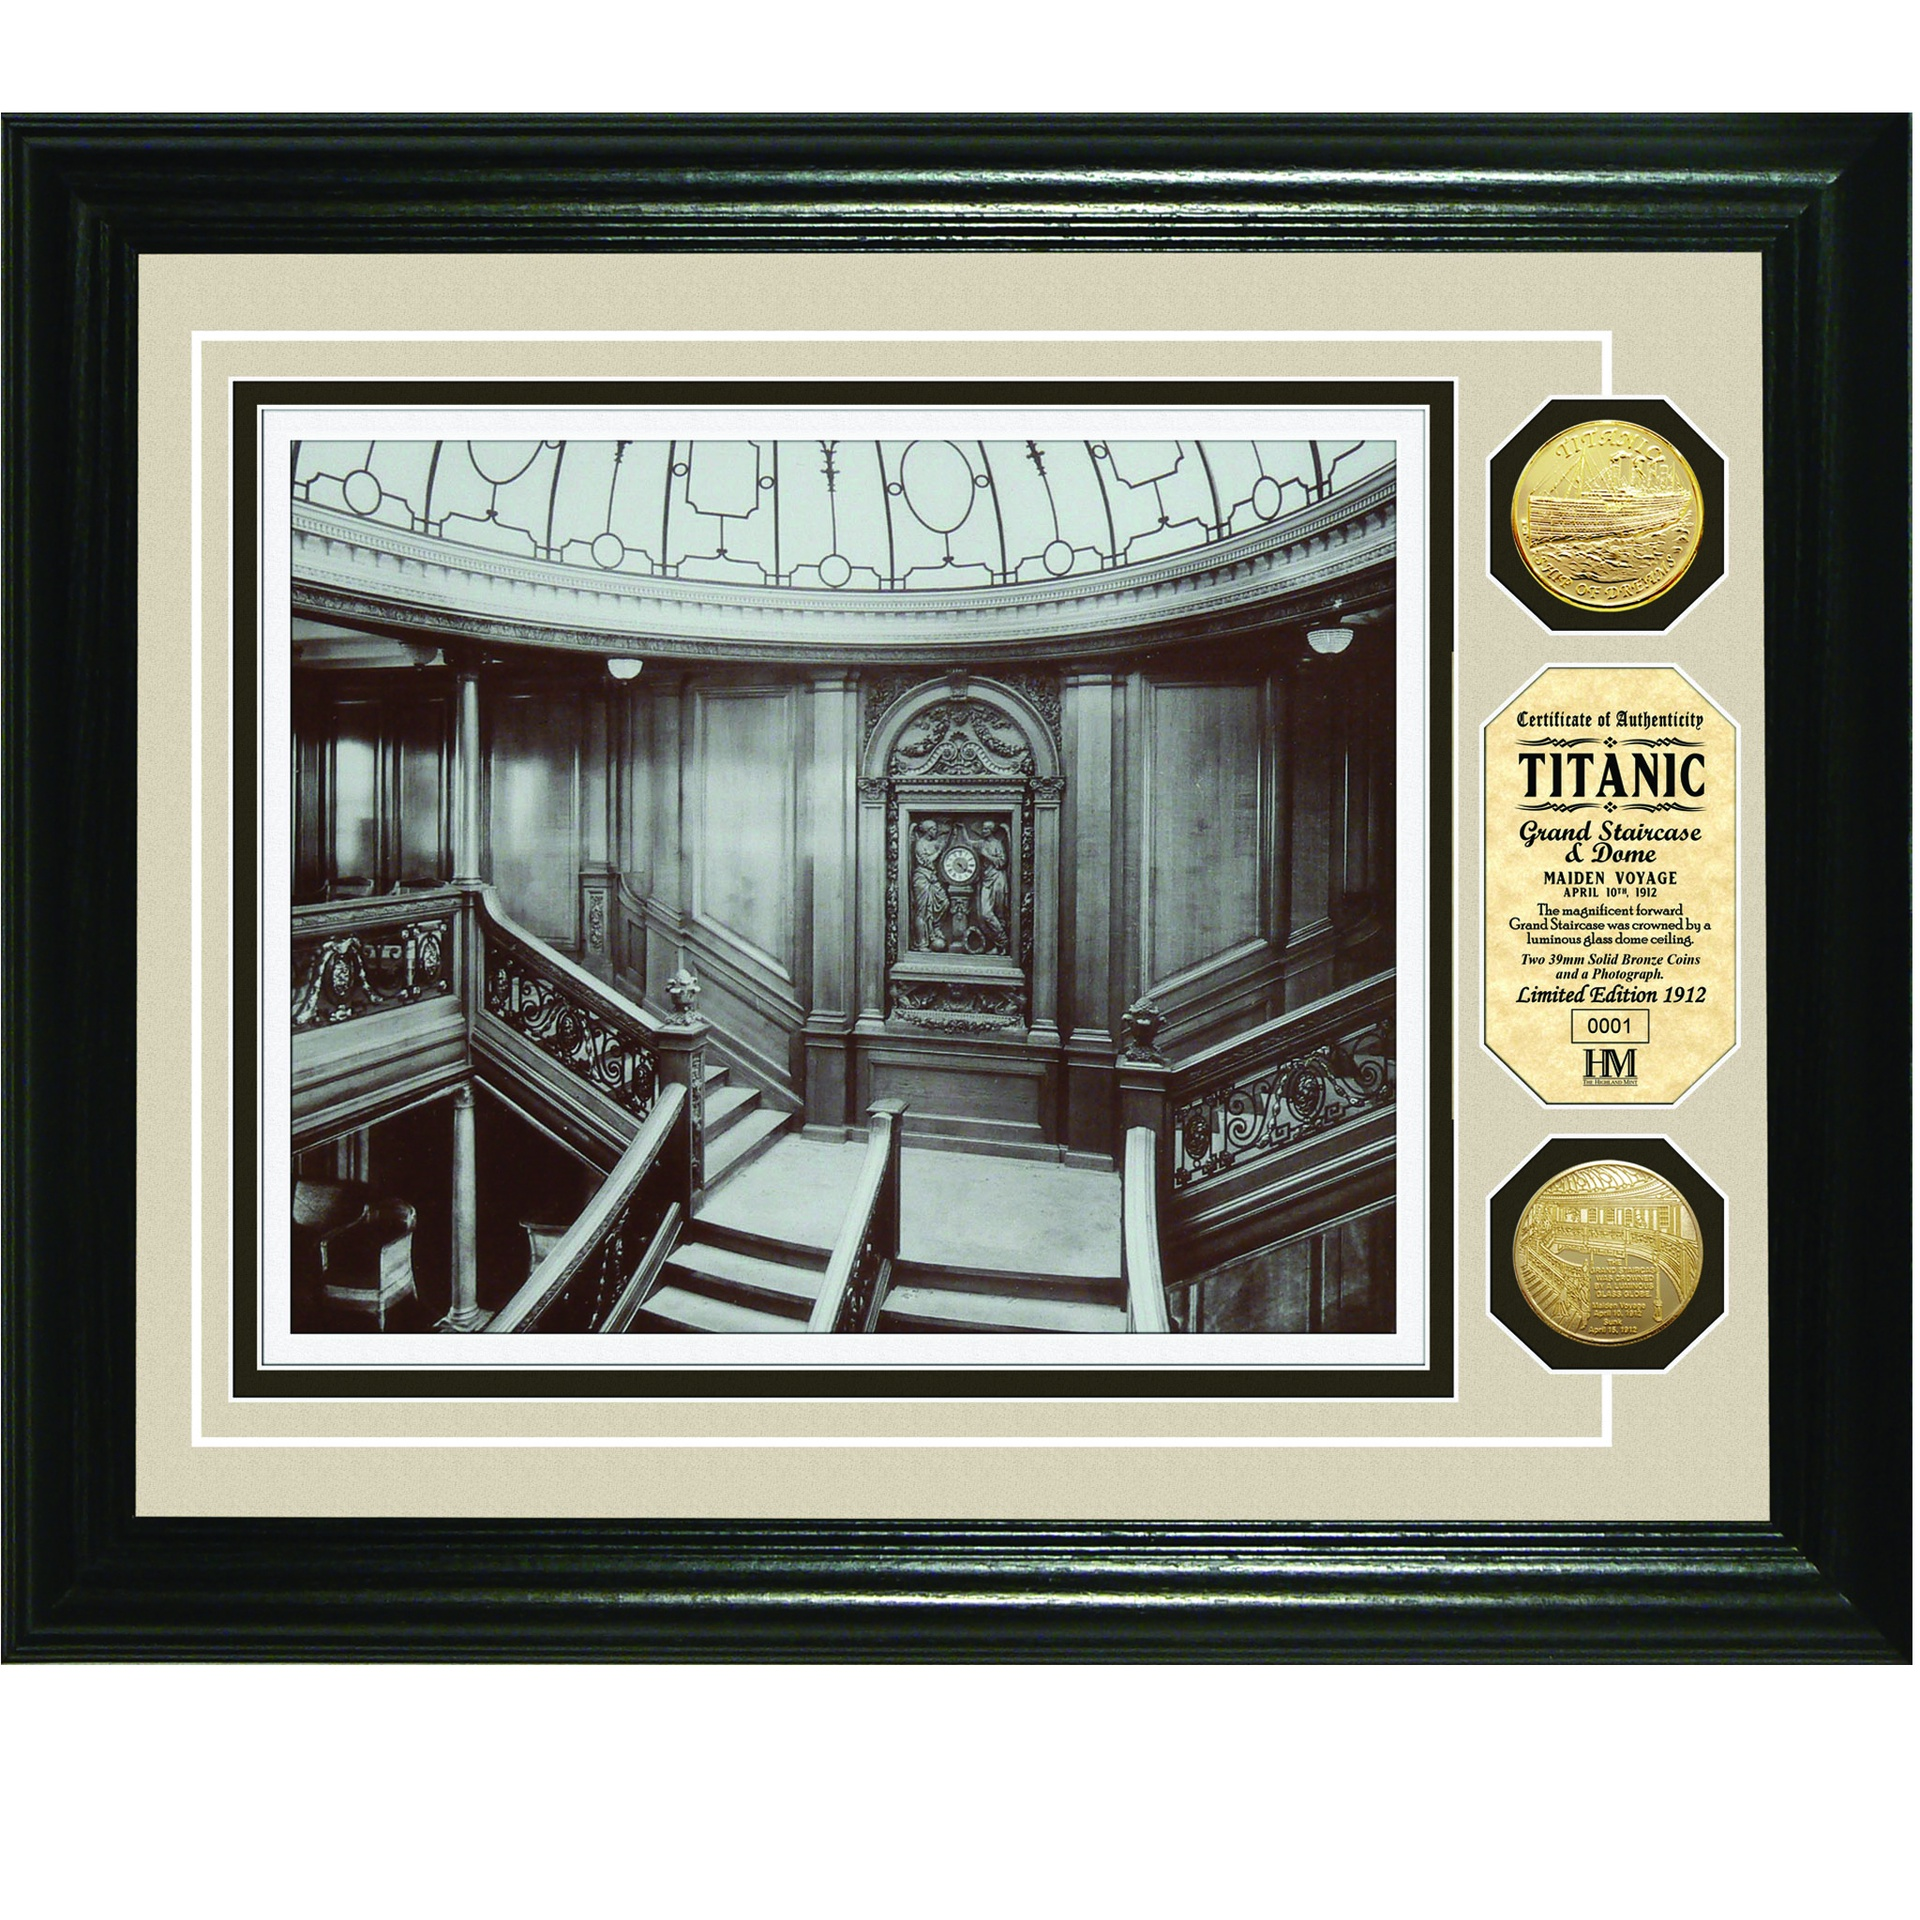 13 x 16 Framed Grand Staircase w/Gold Tone Medallions